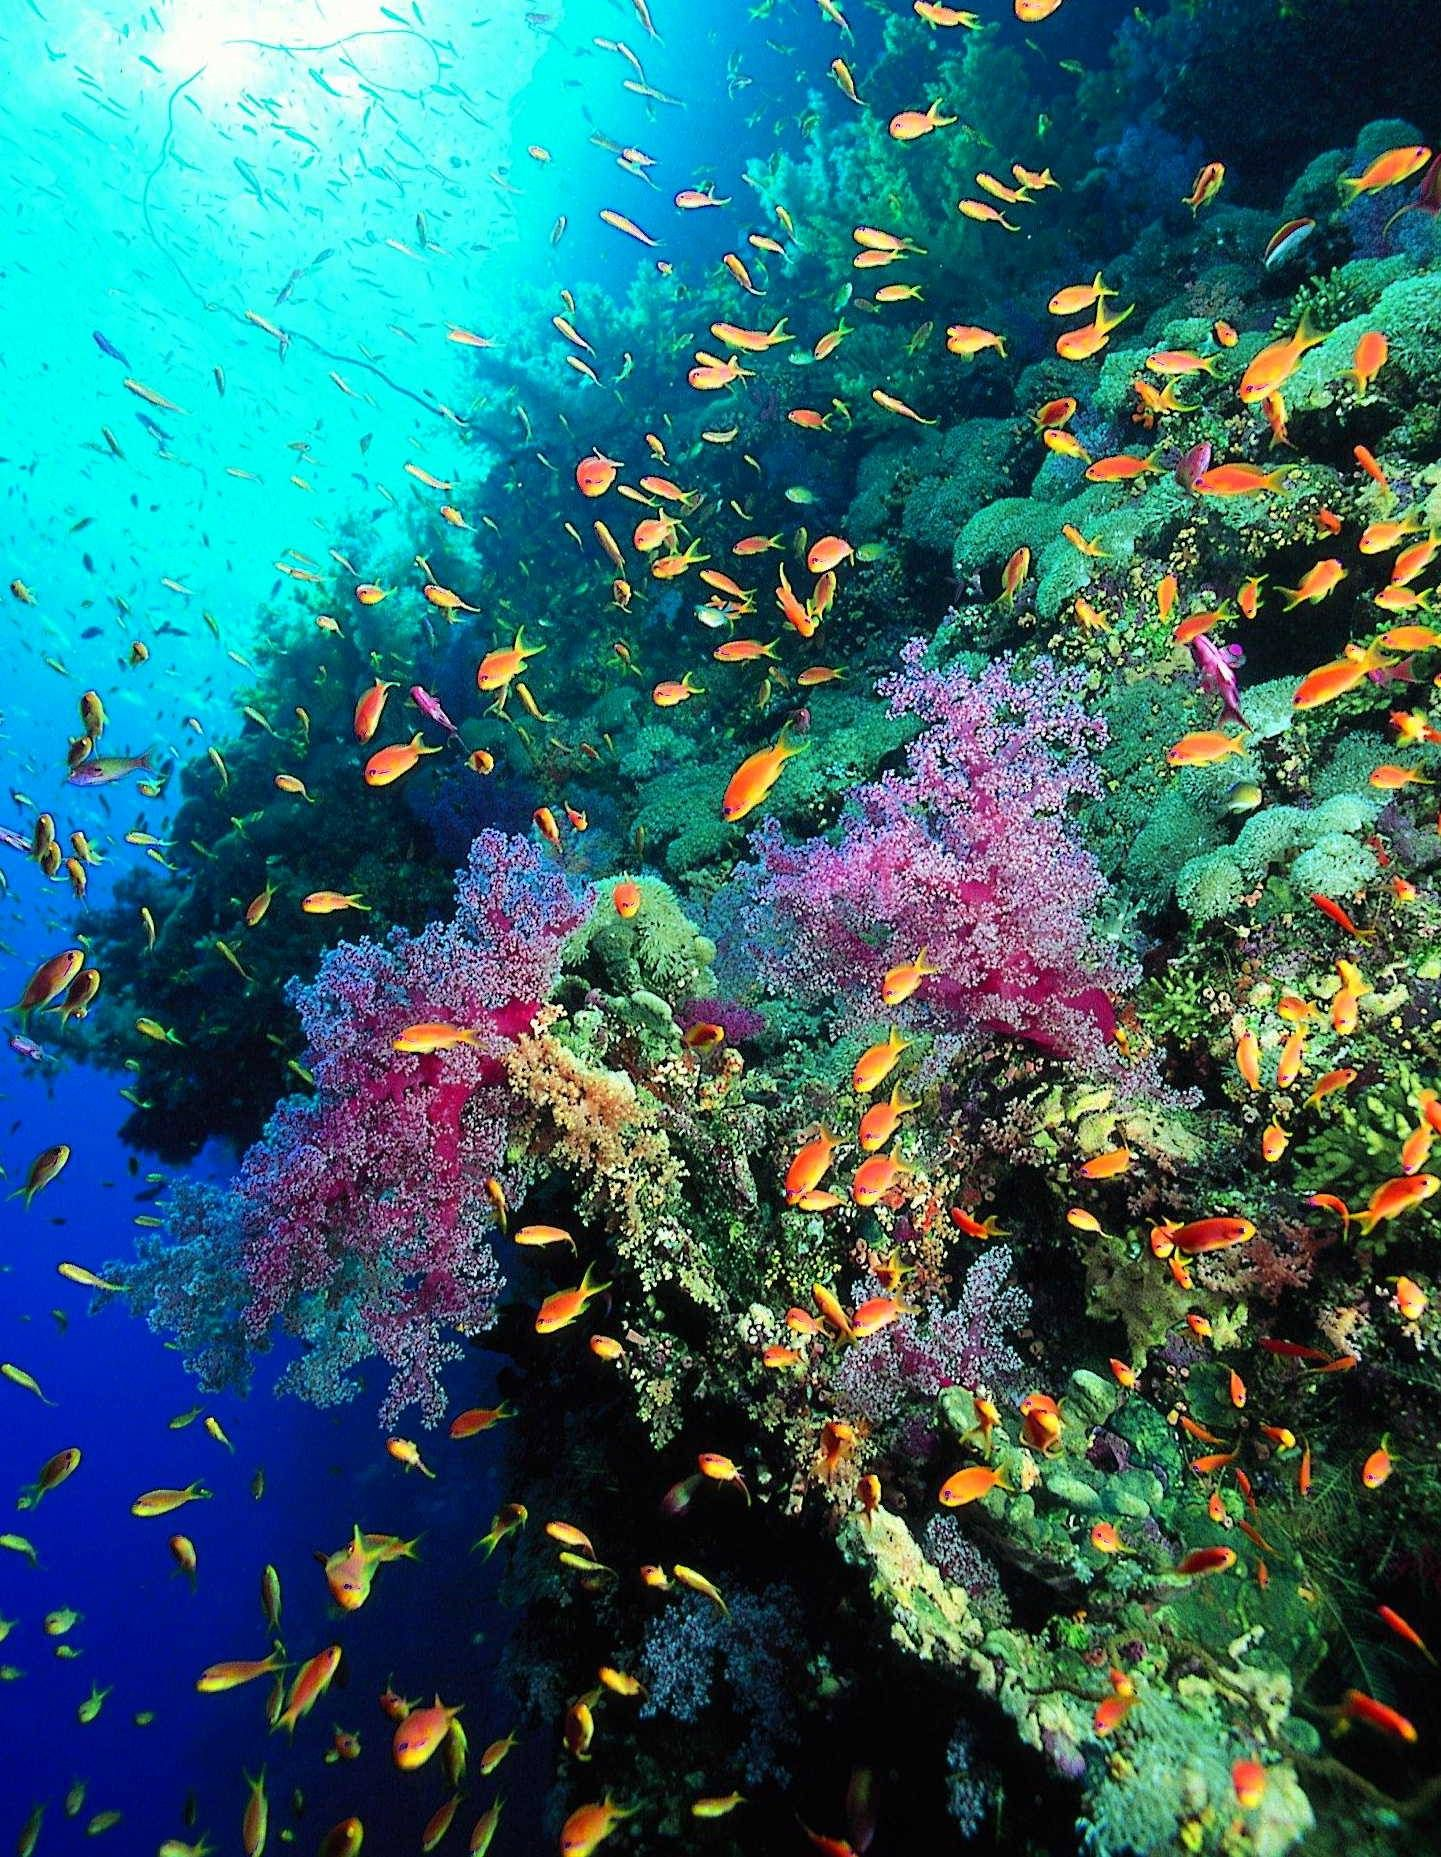 Beautiful scene of fish coral sponges and sea for Reef tropical fish